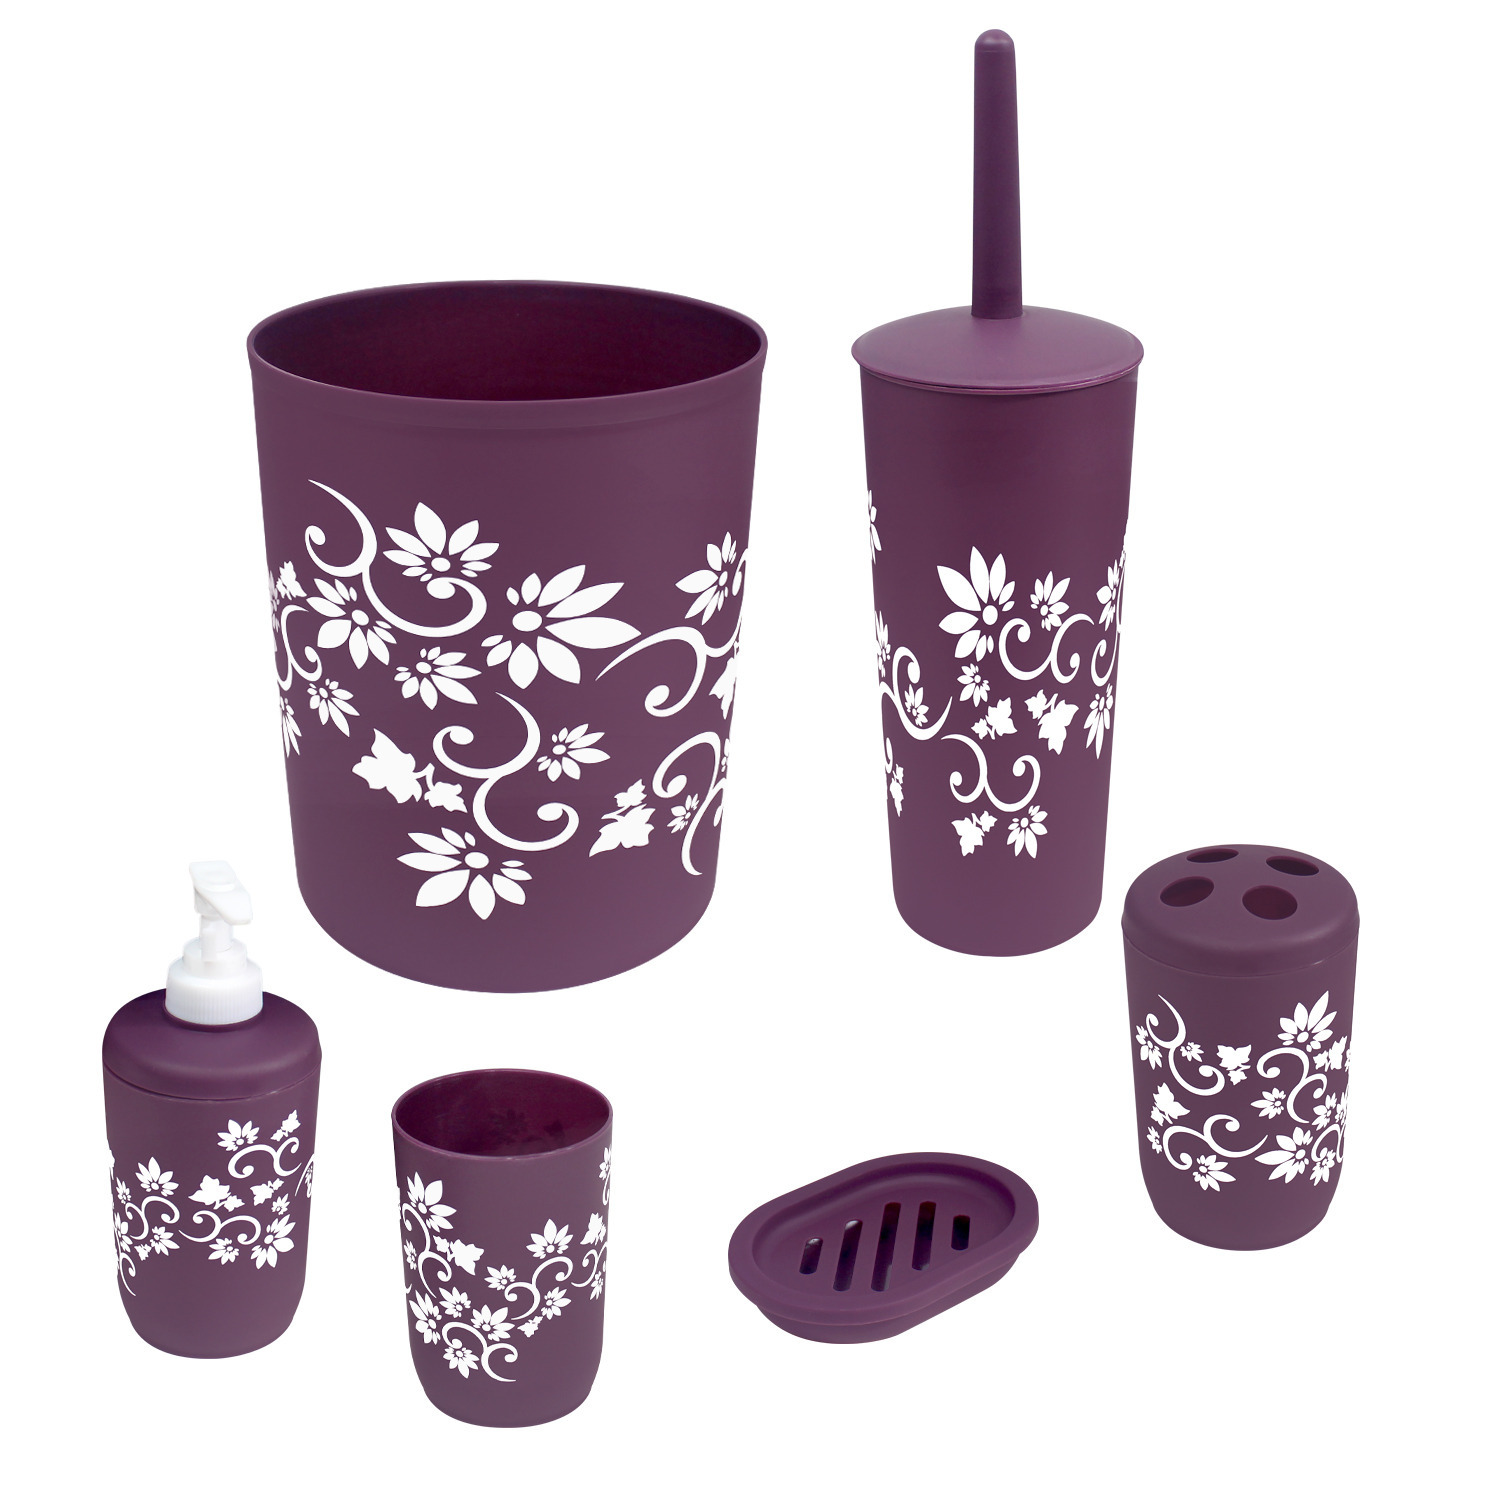 Bathroom Accessories Set Complete, Toilet Brush and Holder, Trash Can, Toothbrush Holder, Purple, 7 Pieces